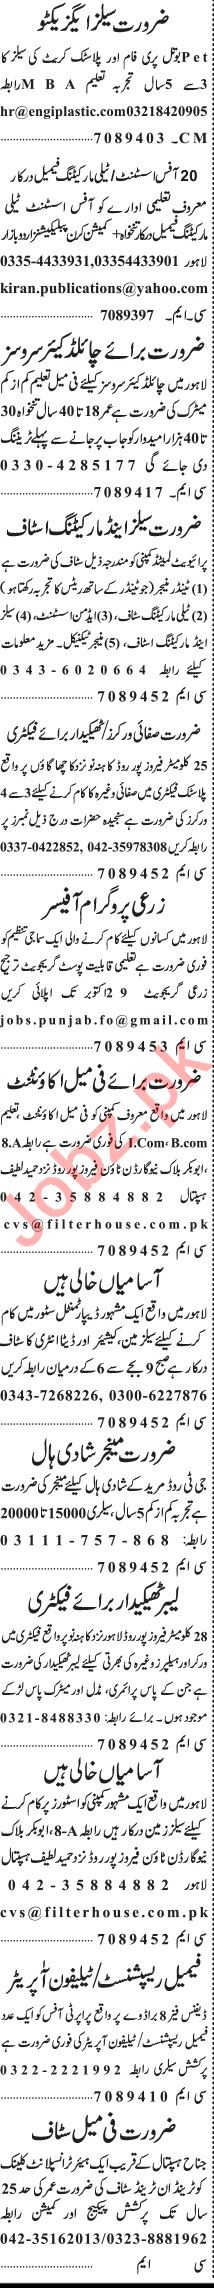 Jang Sunday Classified Ads 25 Oct 2020 for Management Staff